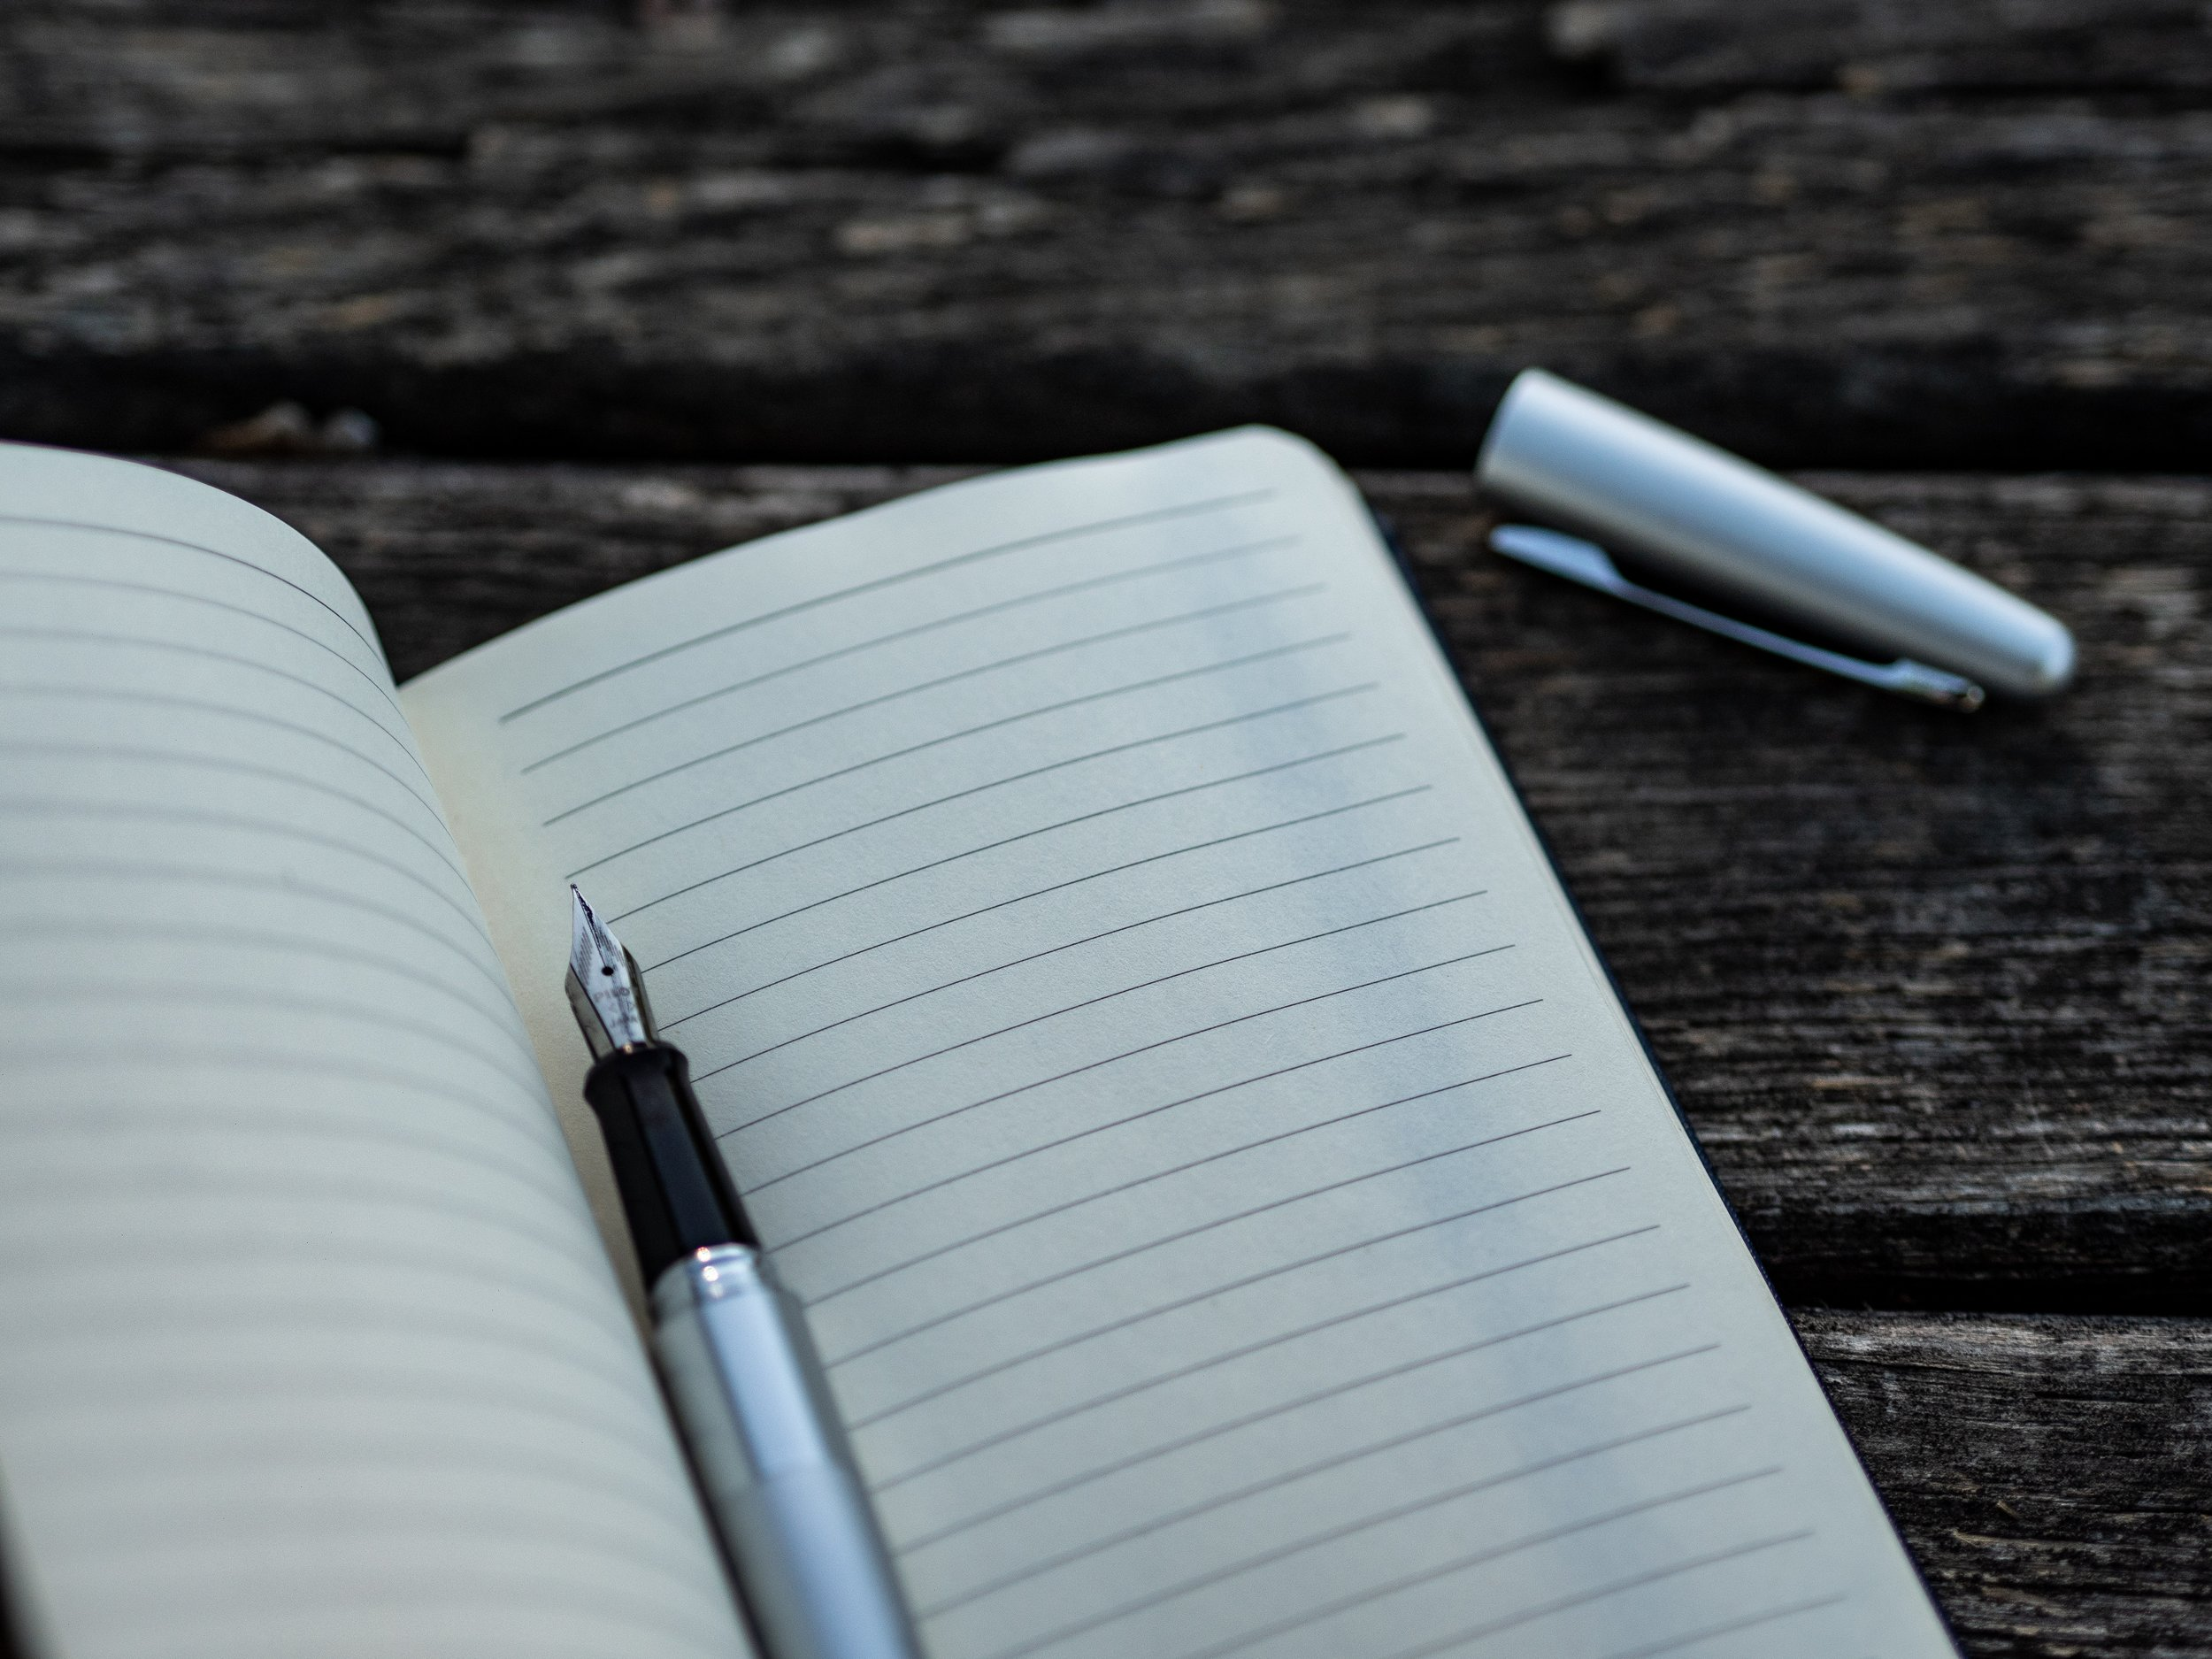 Journaling can help